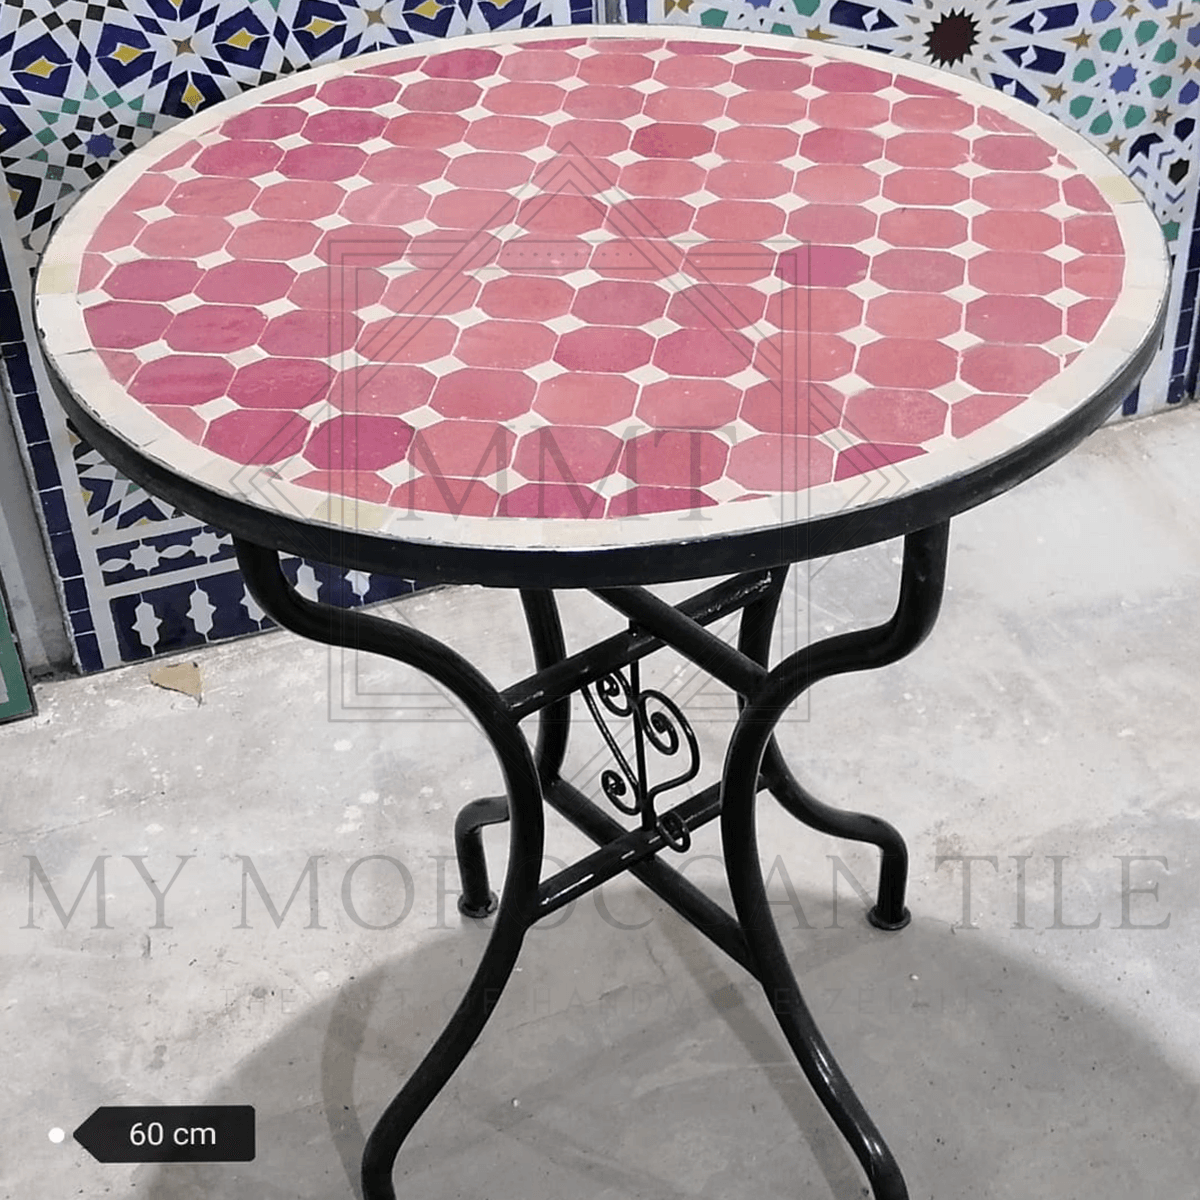 Handmade Moroccan Mosaic Table 2188-03